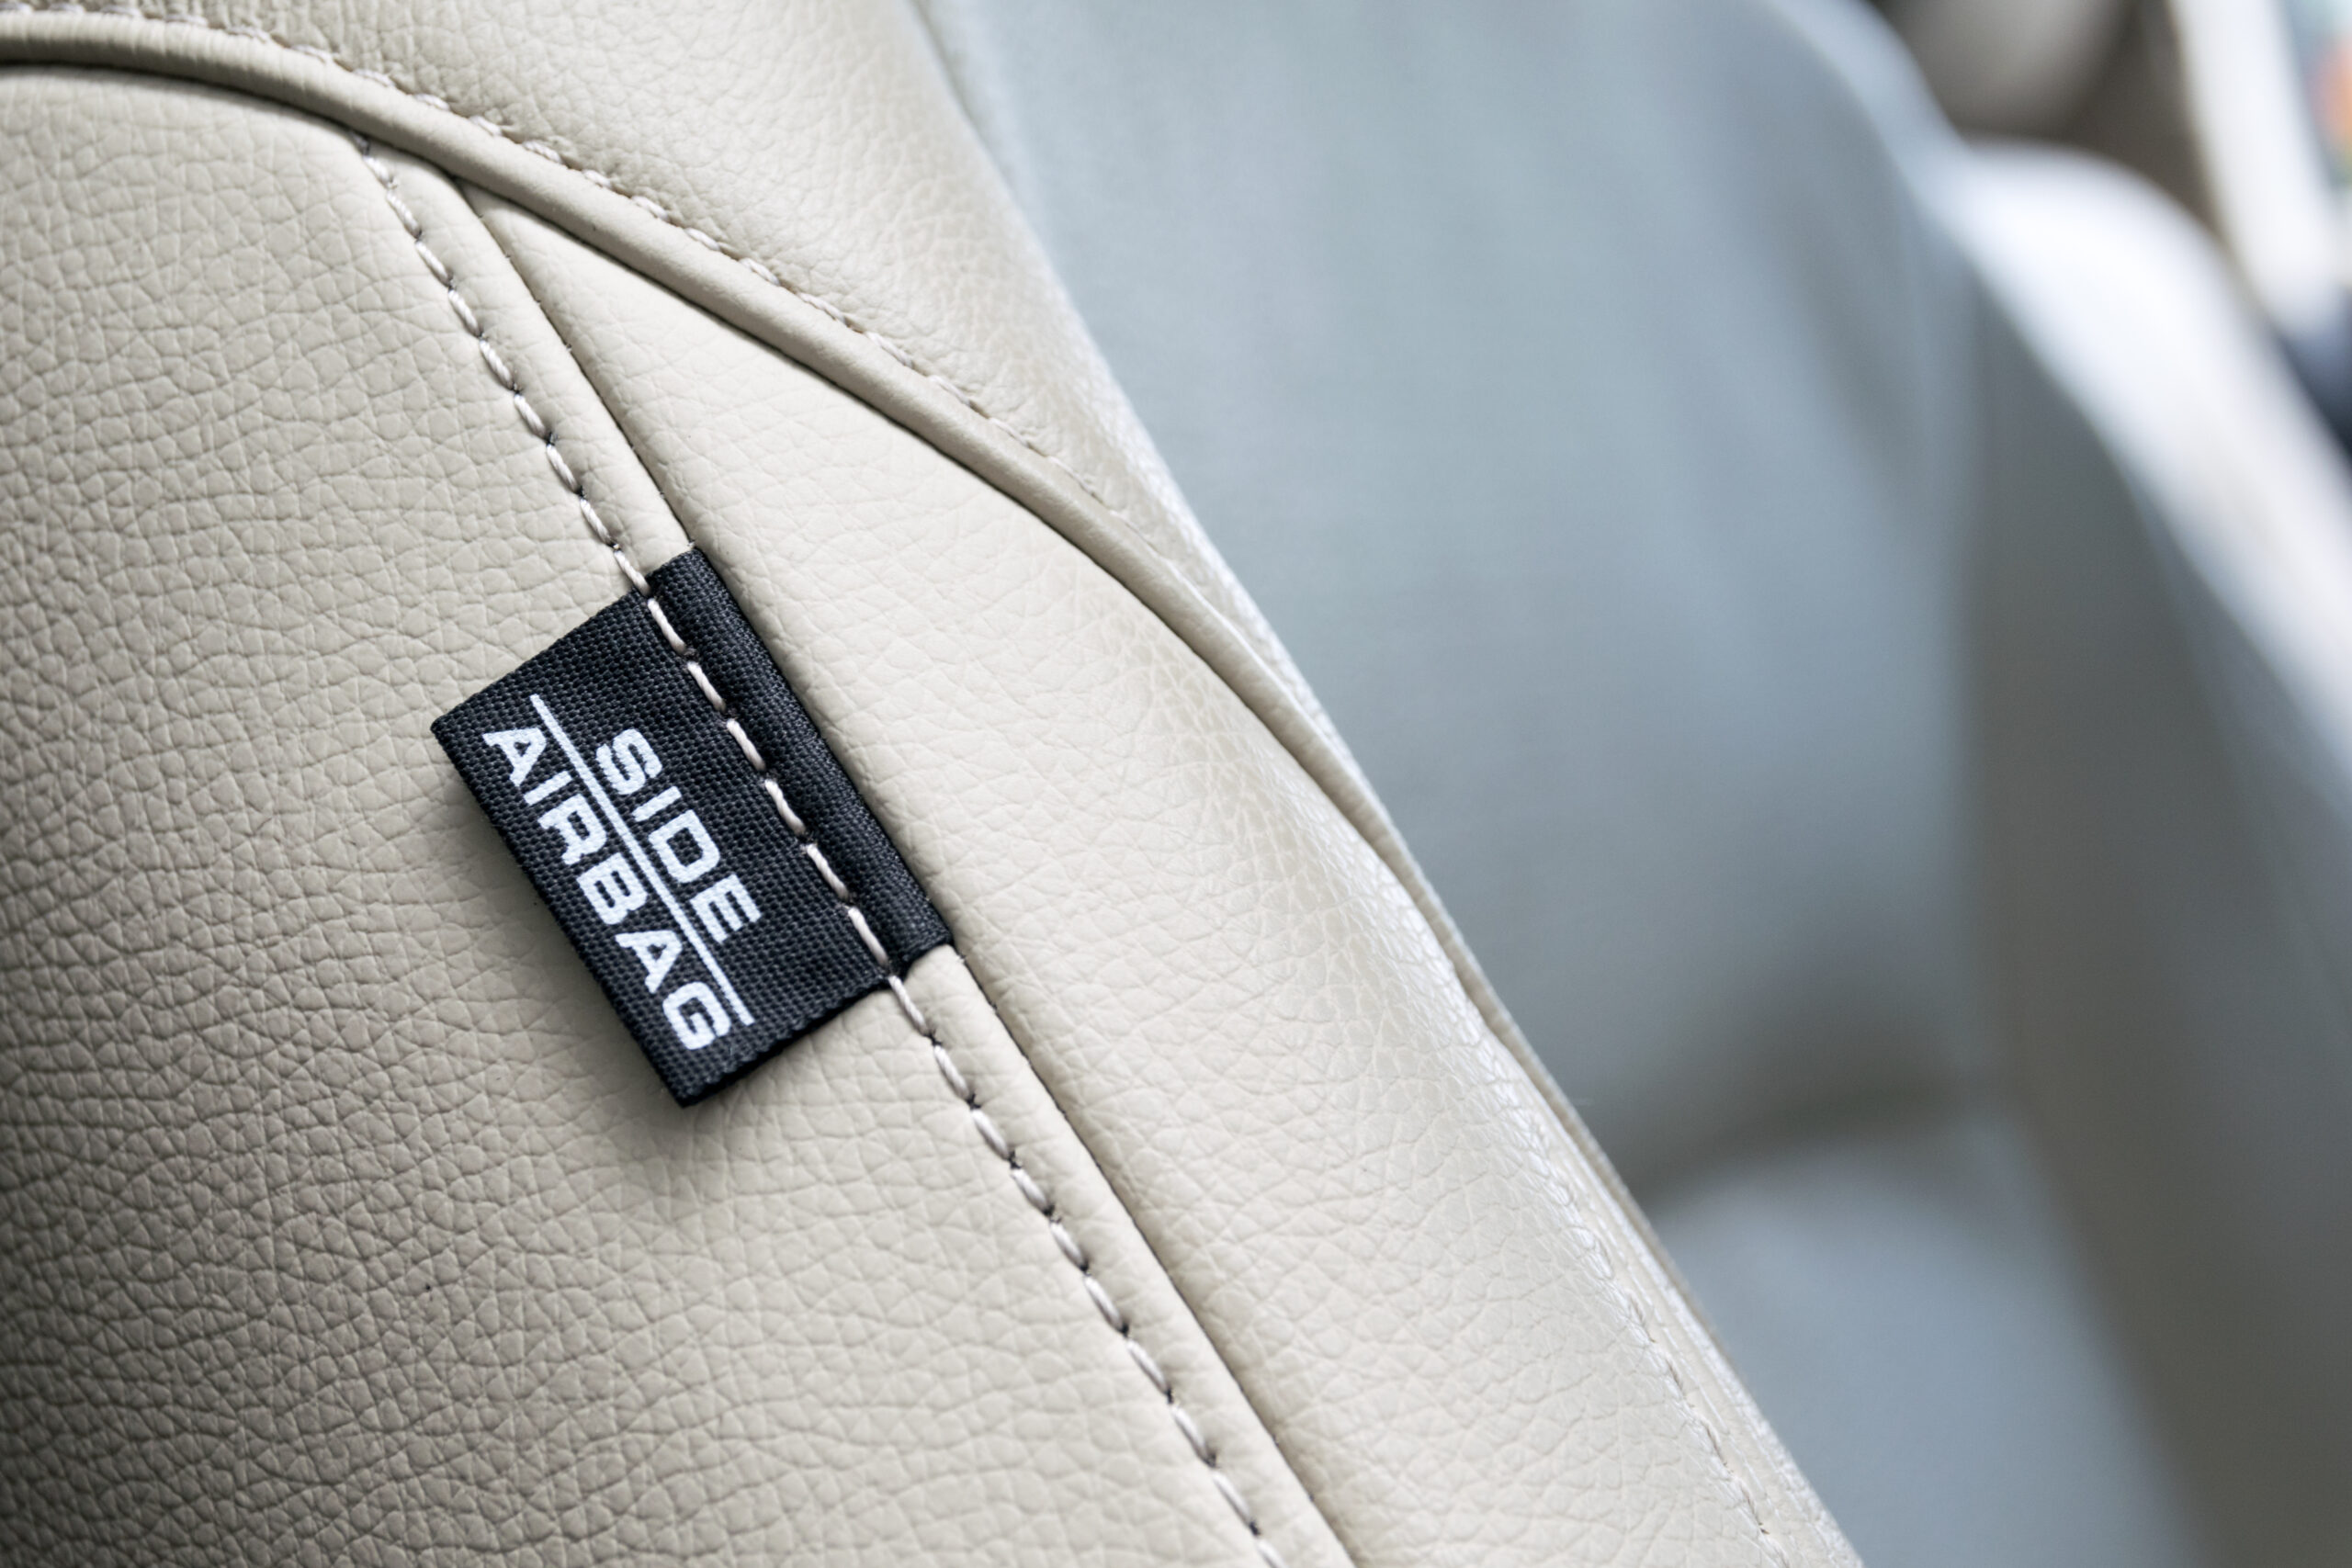 SRS & AIRBAG SYSTEMS